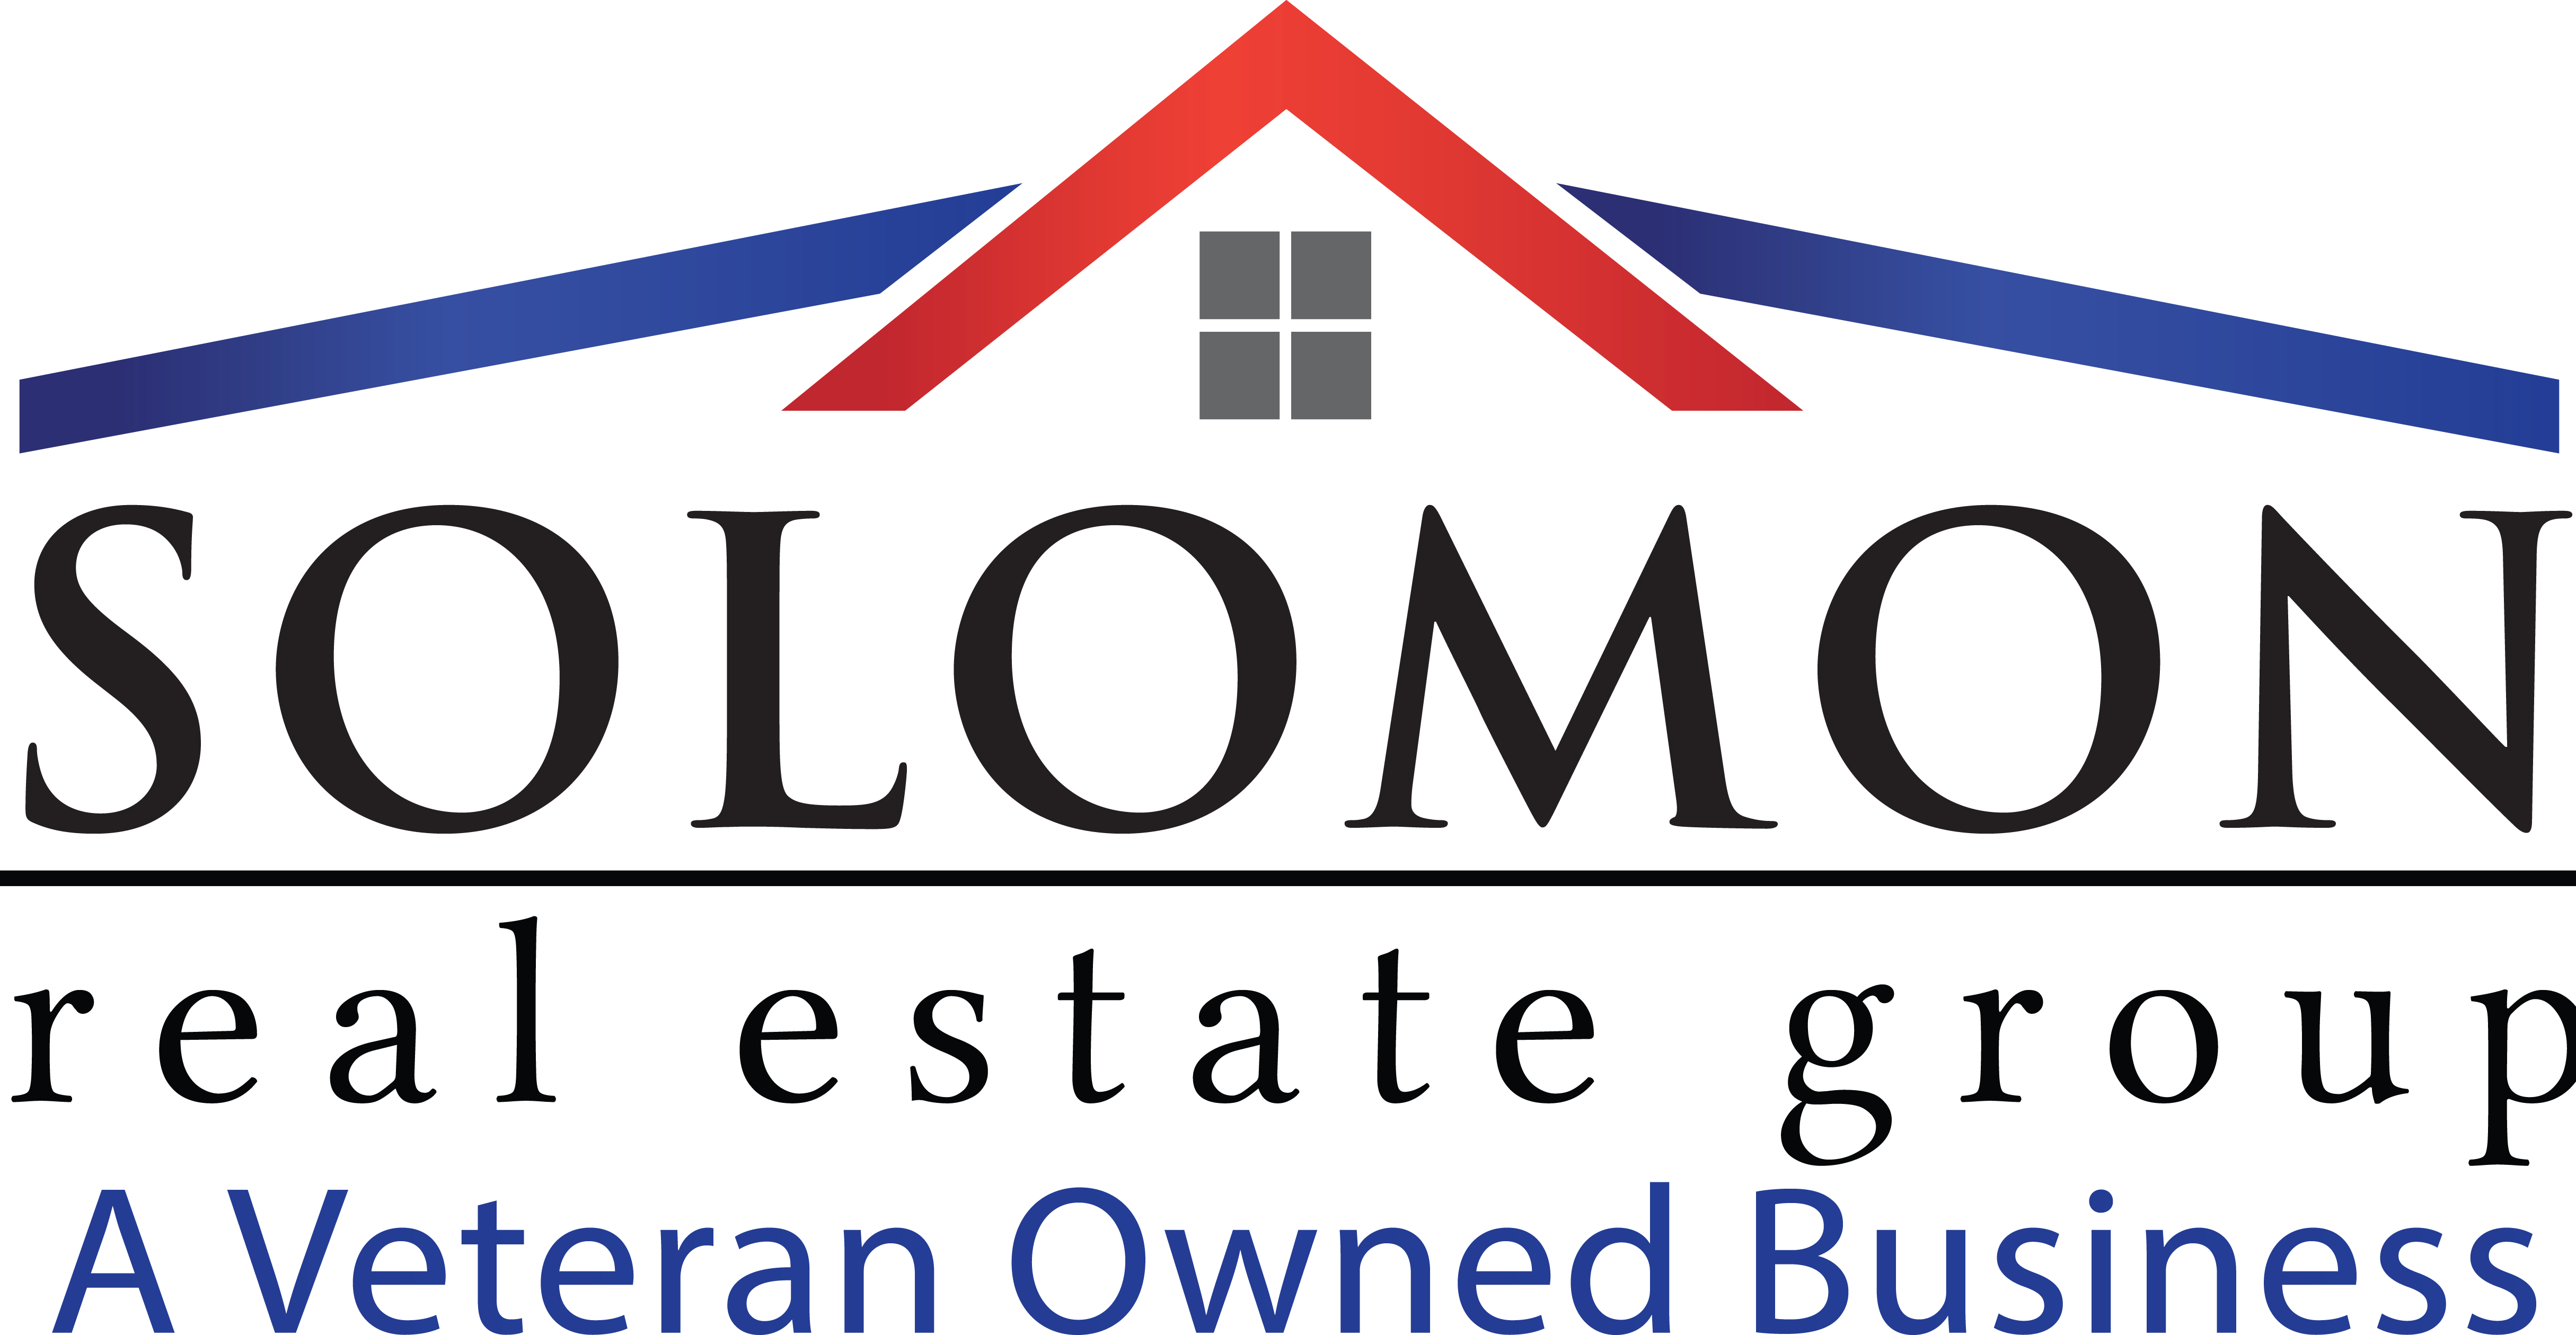 SOLOMON REAL ESTATE GROUP